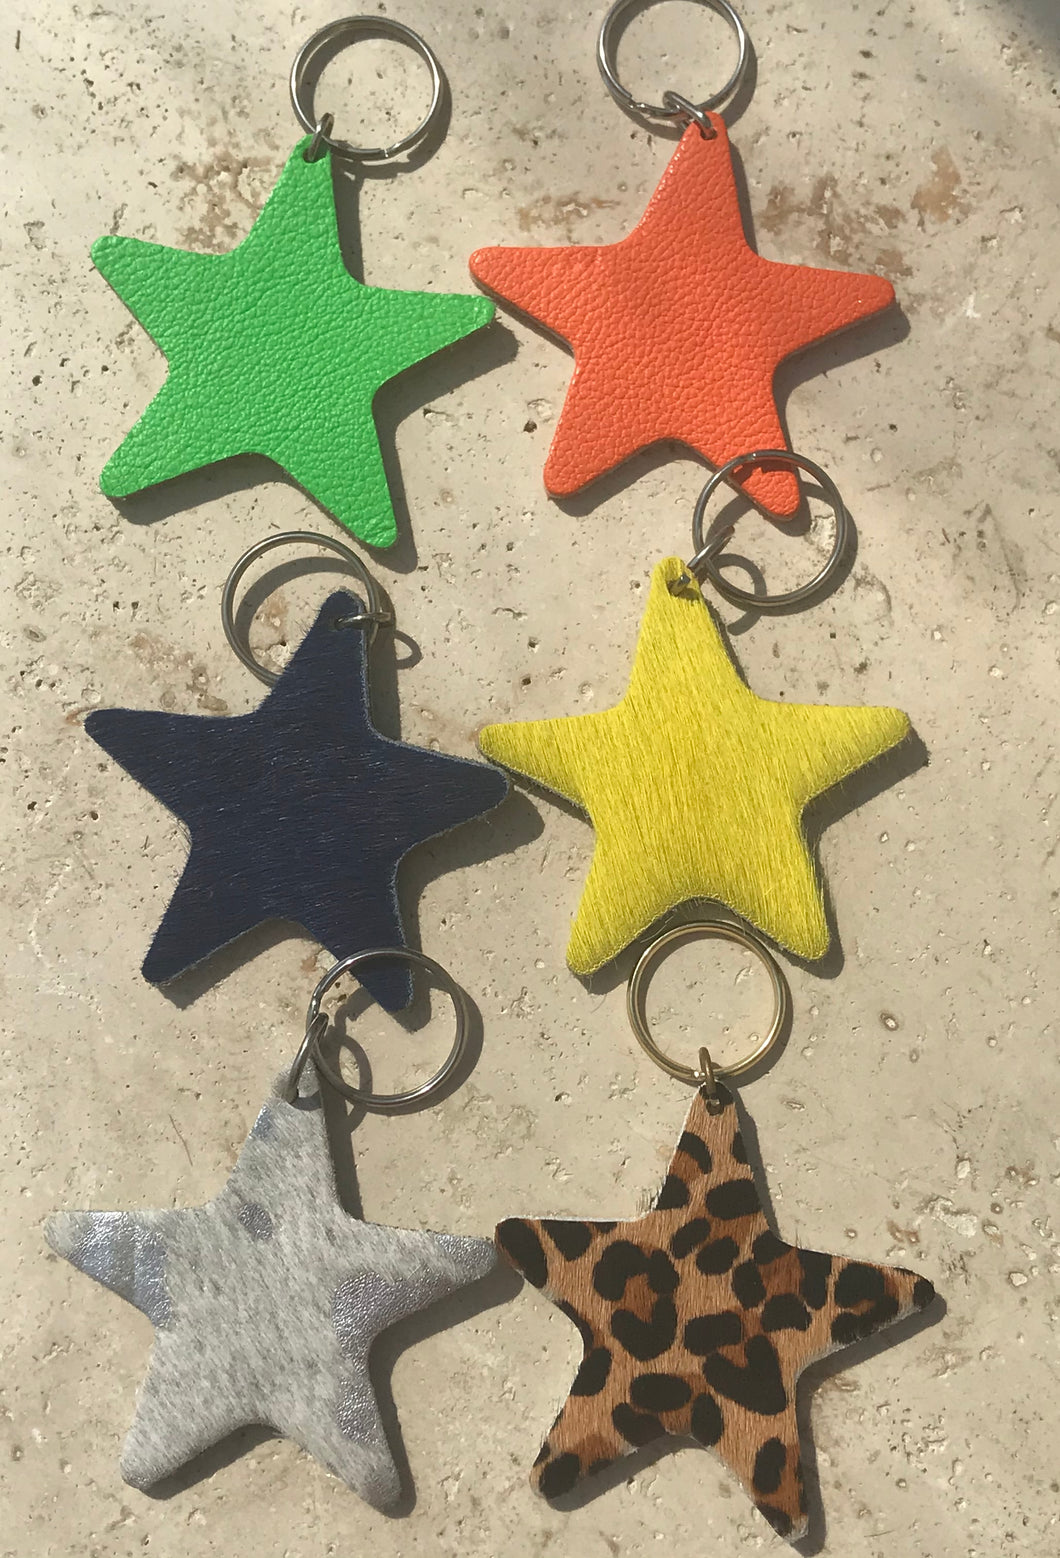 Star key rings